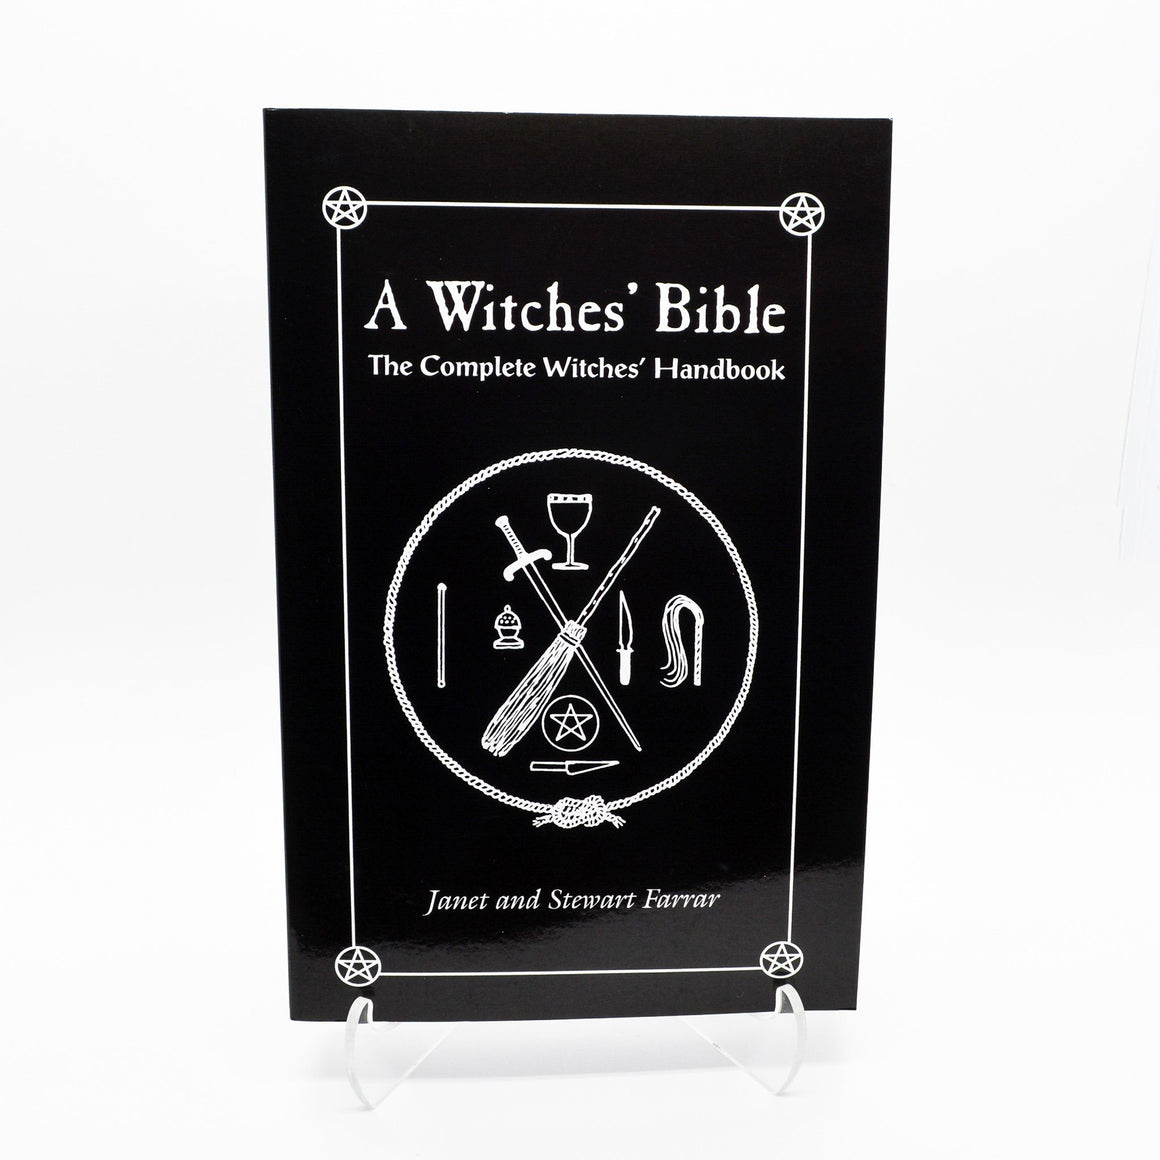 A Witches' Bible by Janet and Steven Farrar